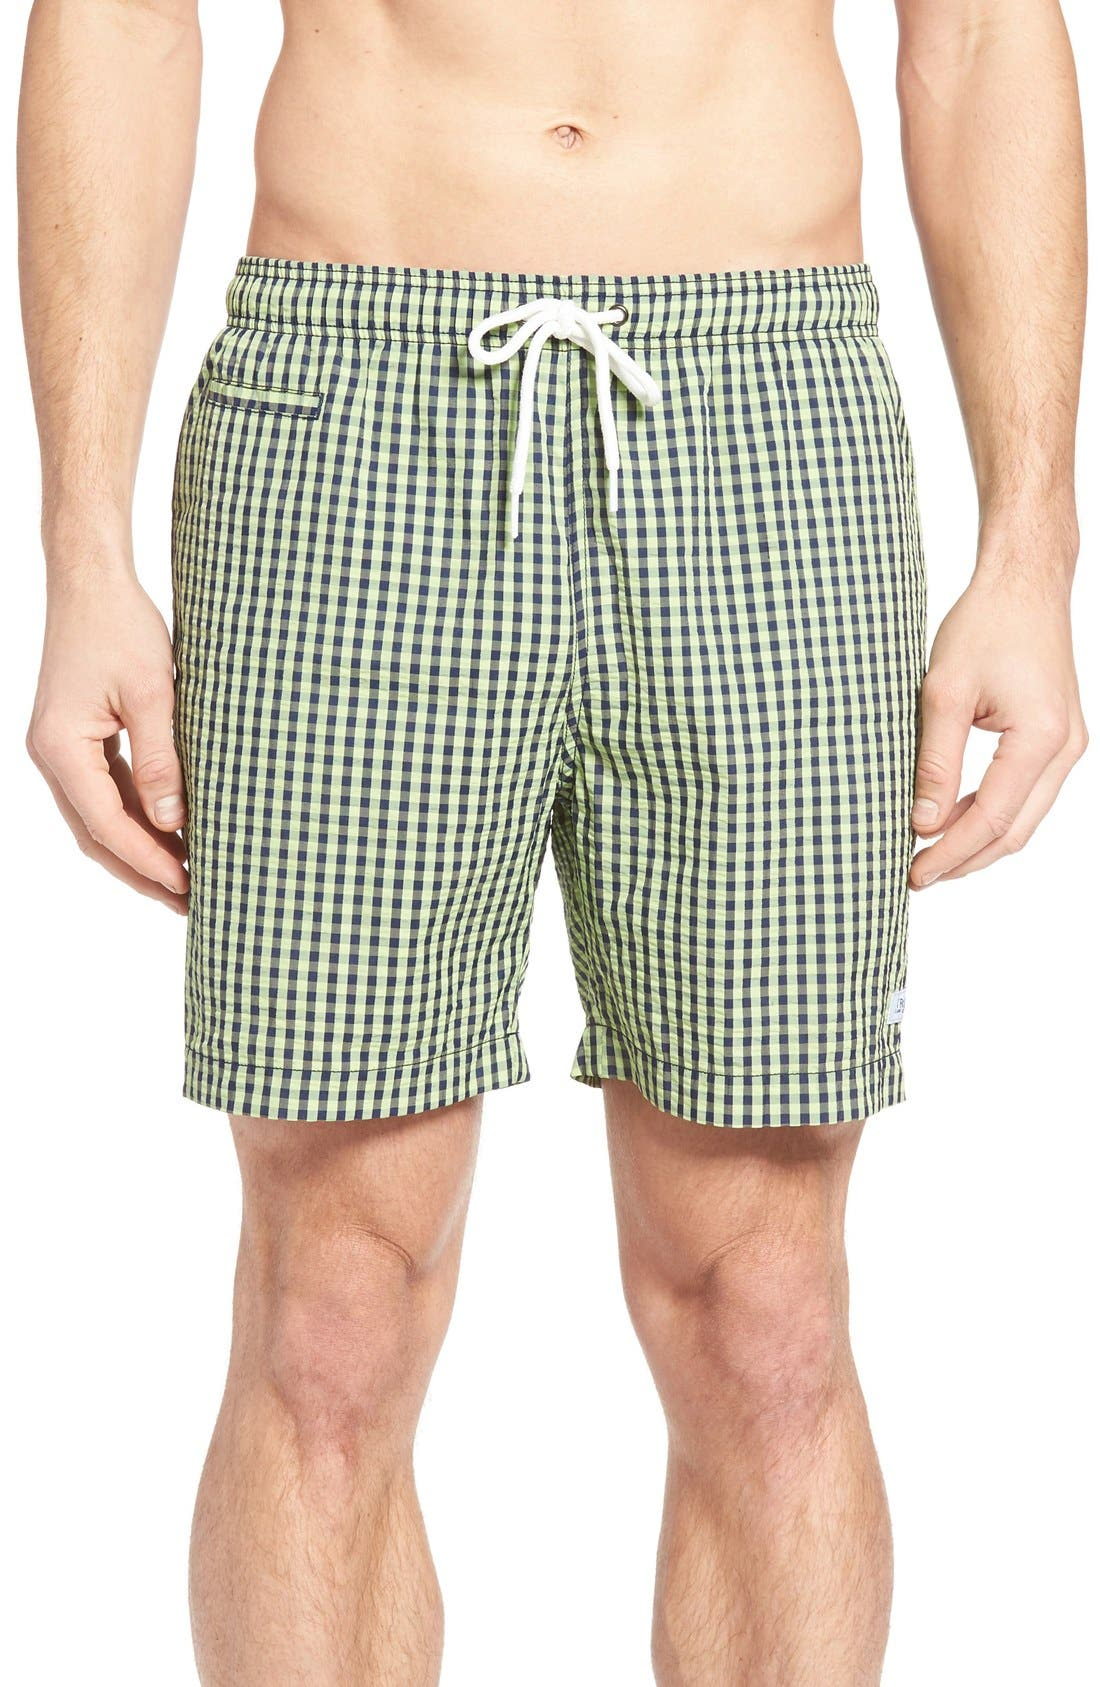 Trunks Surf & Swim Co. 'San O' Gingham Swim Trunks